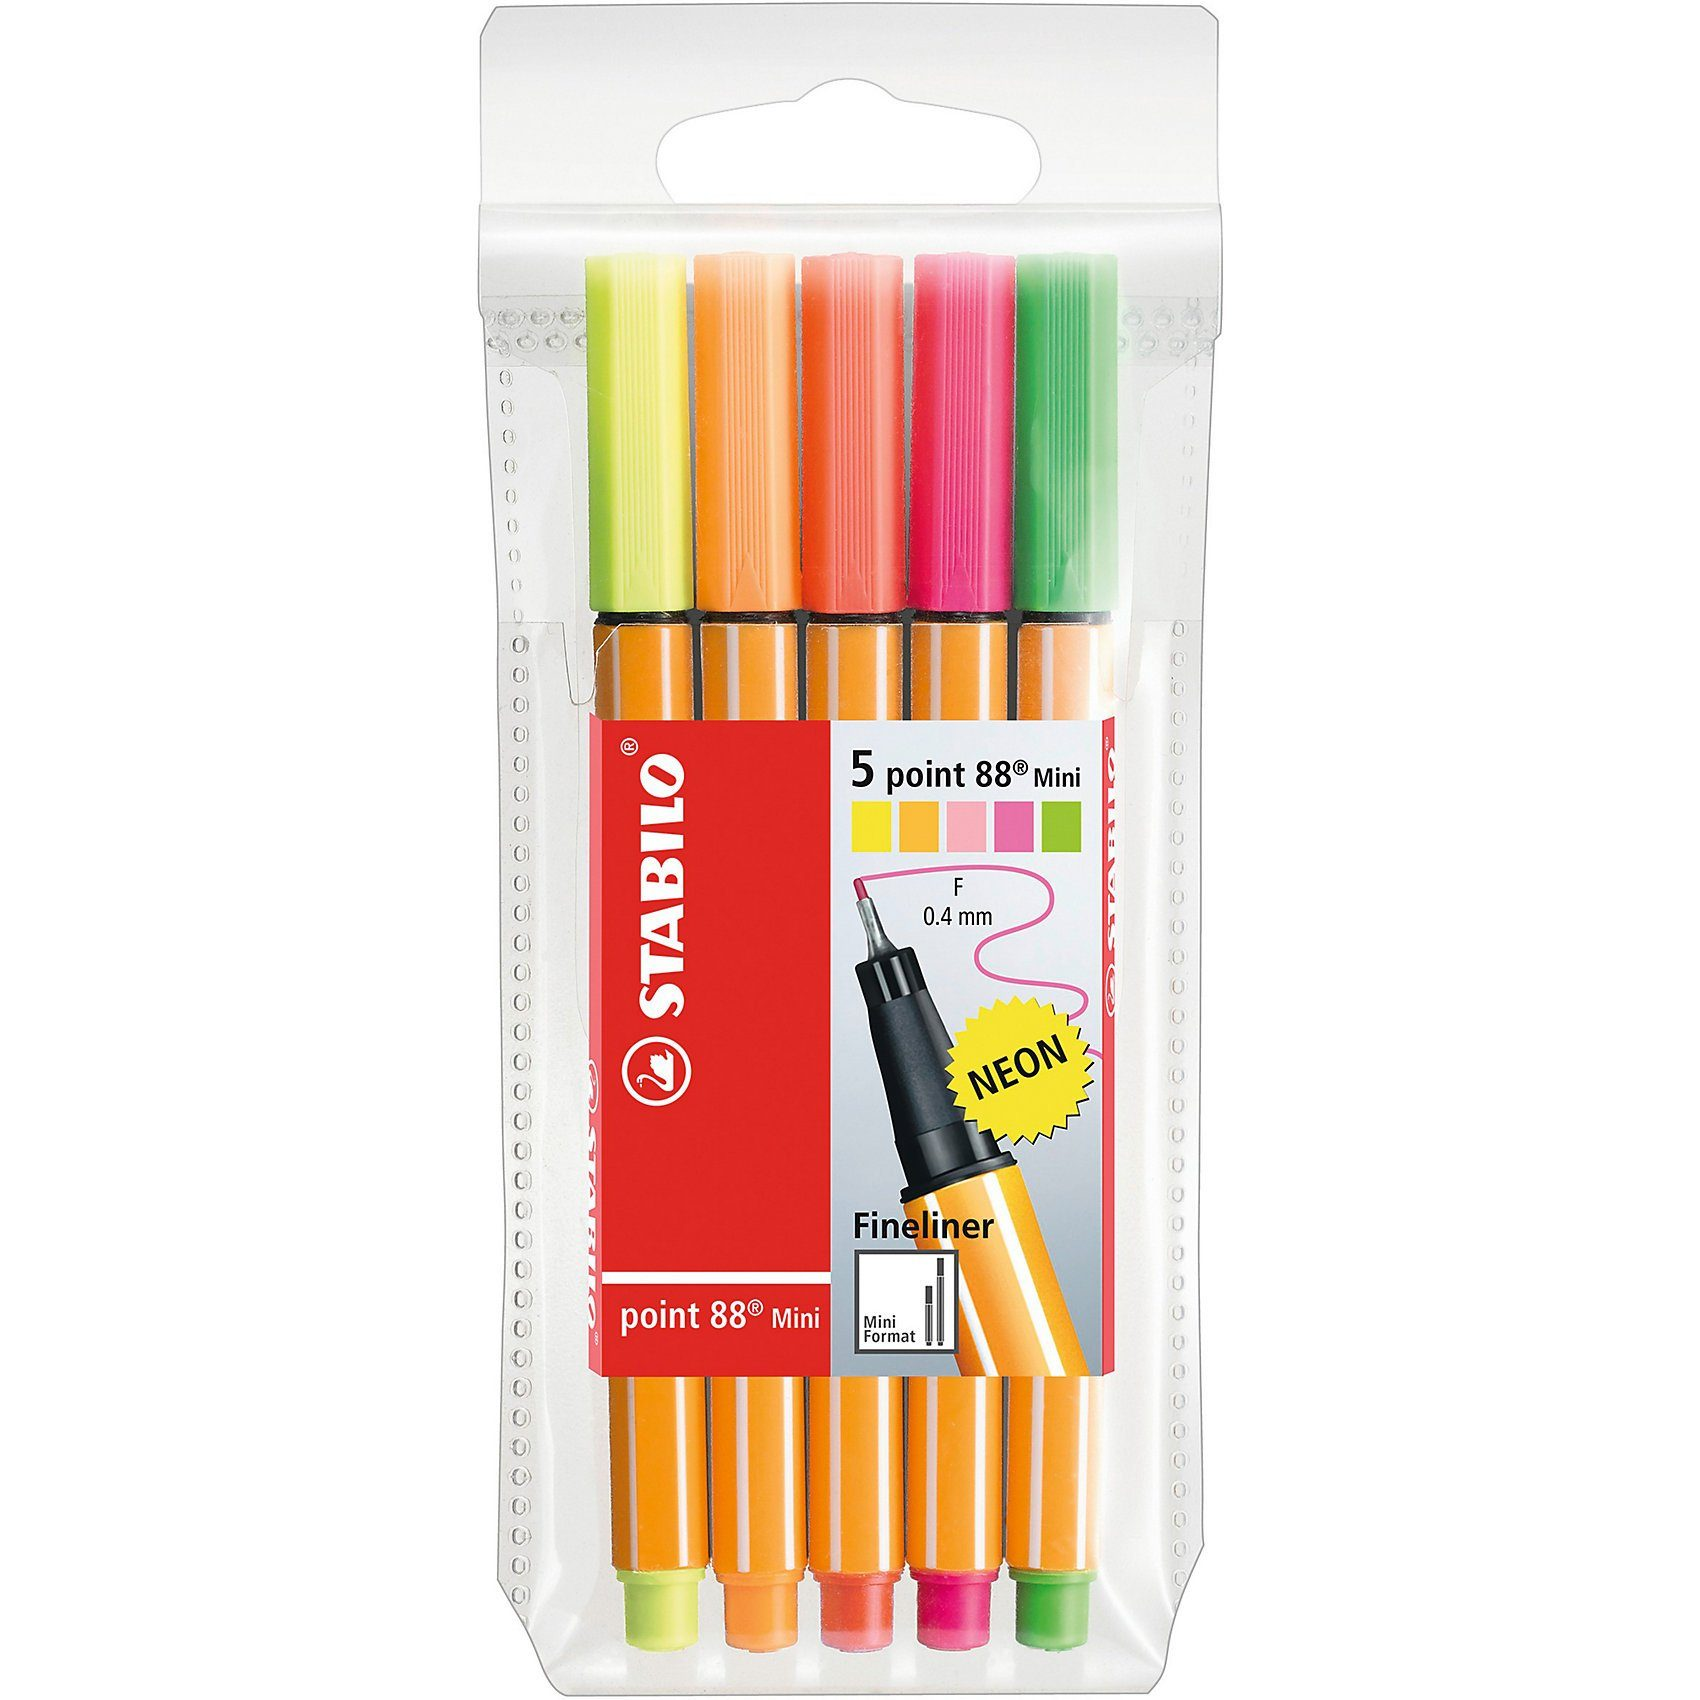 Stabilo Fineliner point 88 Mini NEON, 5 Farben